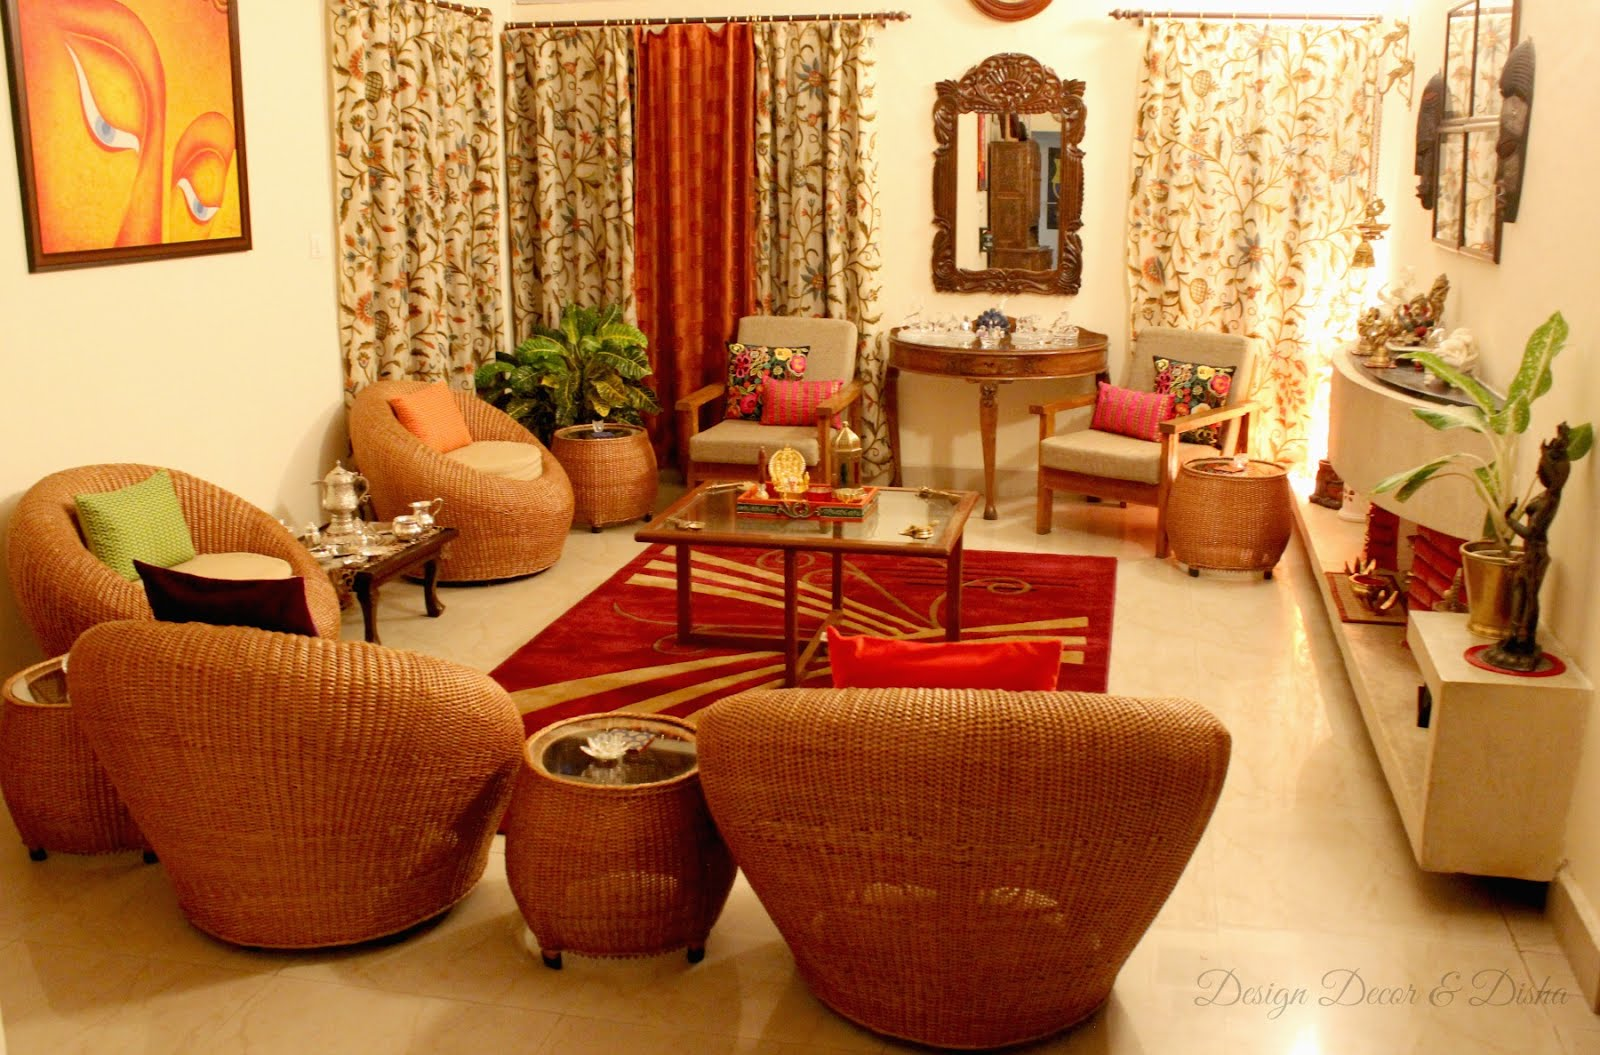 simple home decor ideas indian design decor amp disha an indian design amp decor home 697